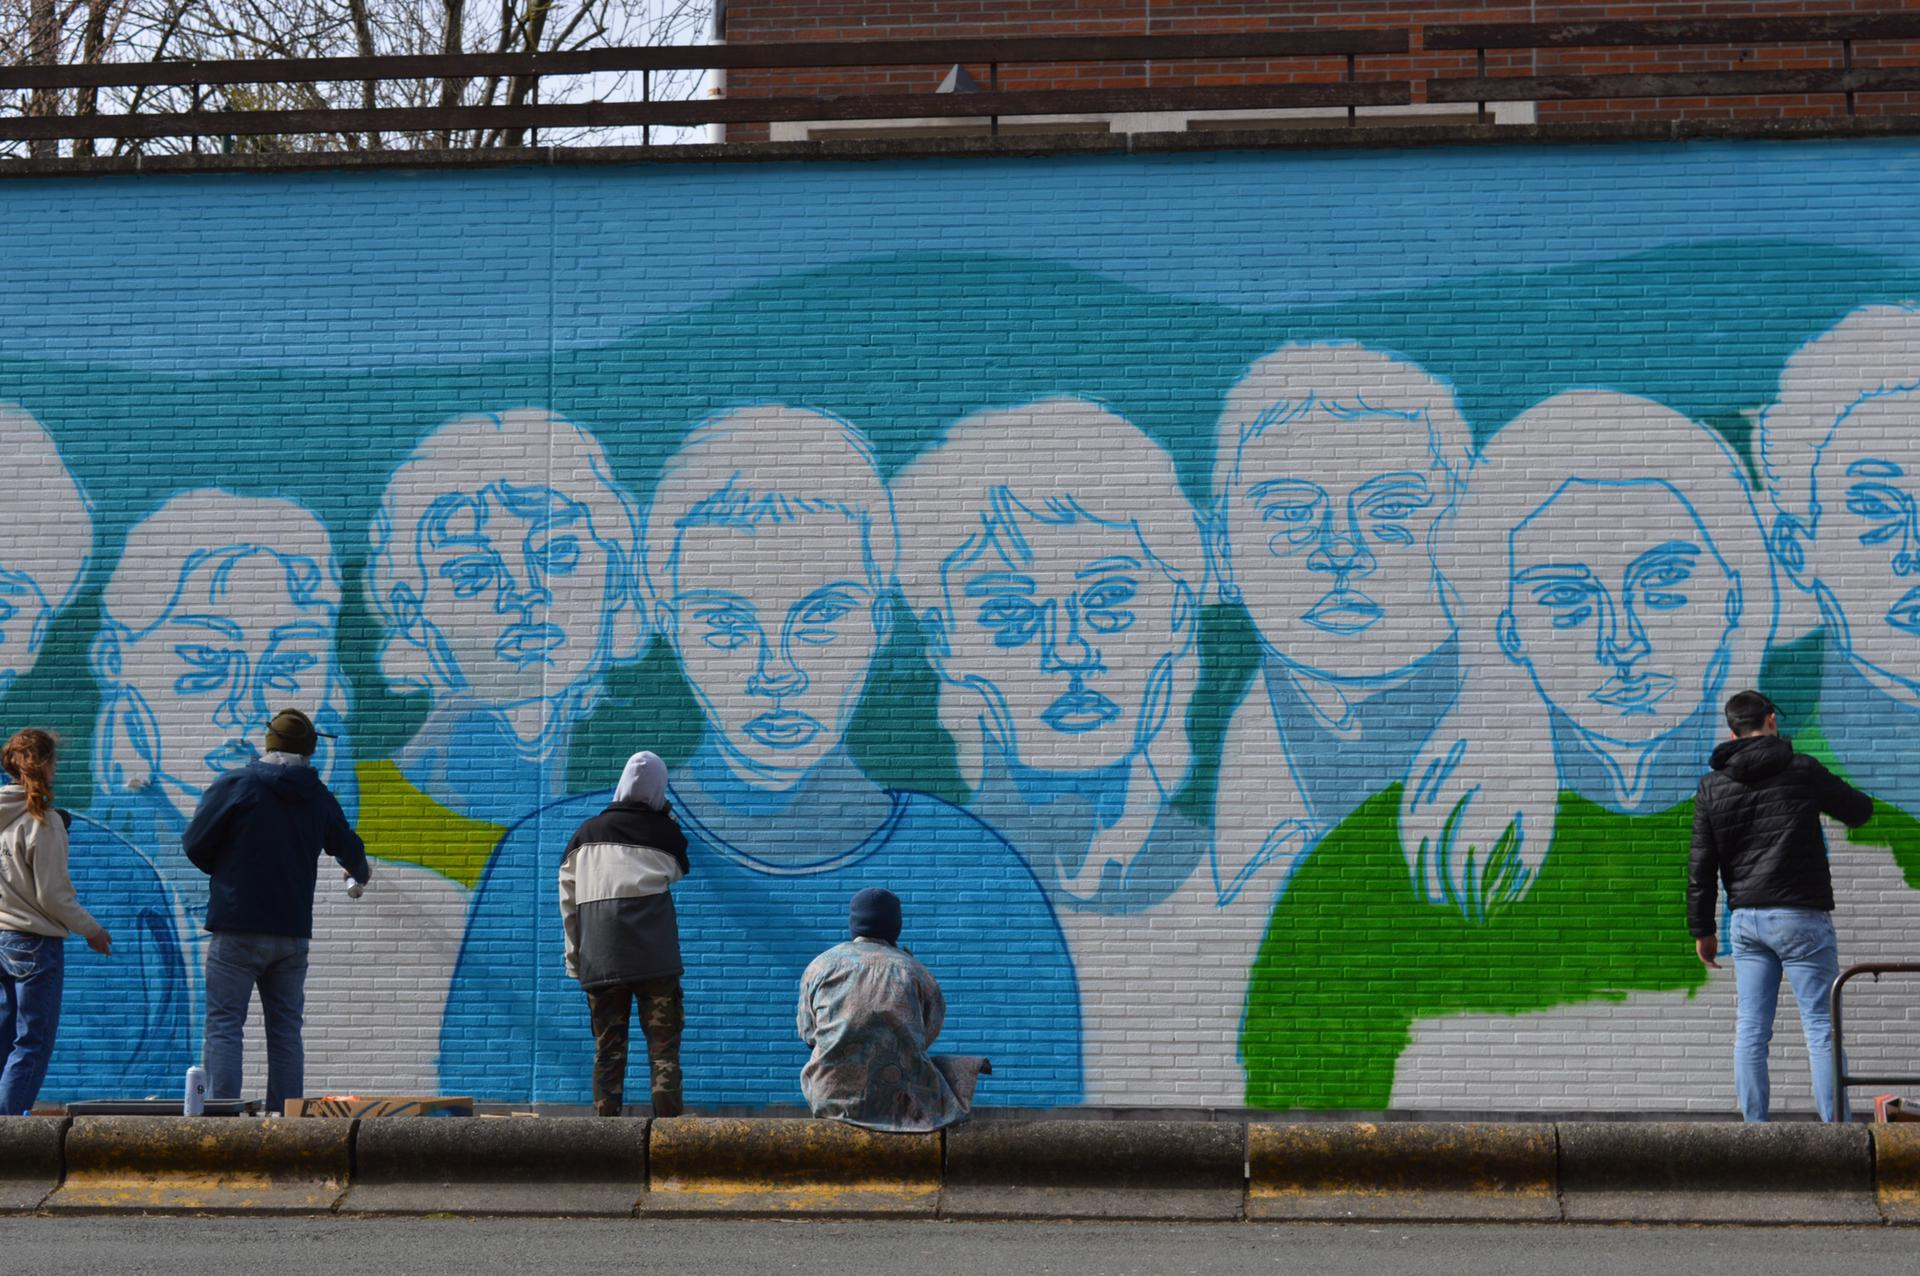 People standing in front of a wall with graffiti Description automatically generated with low confidence